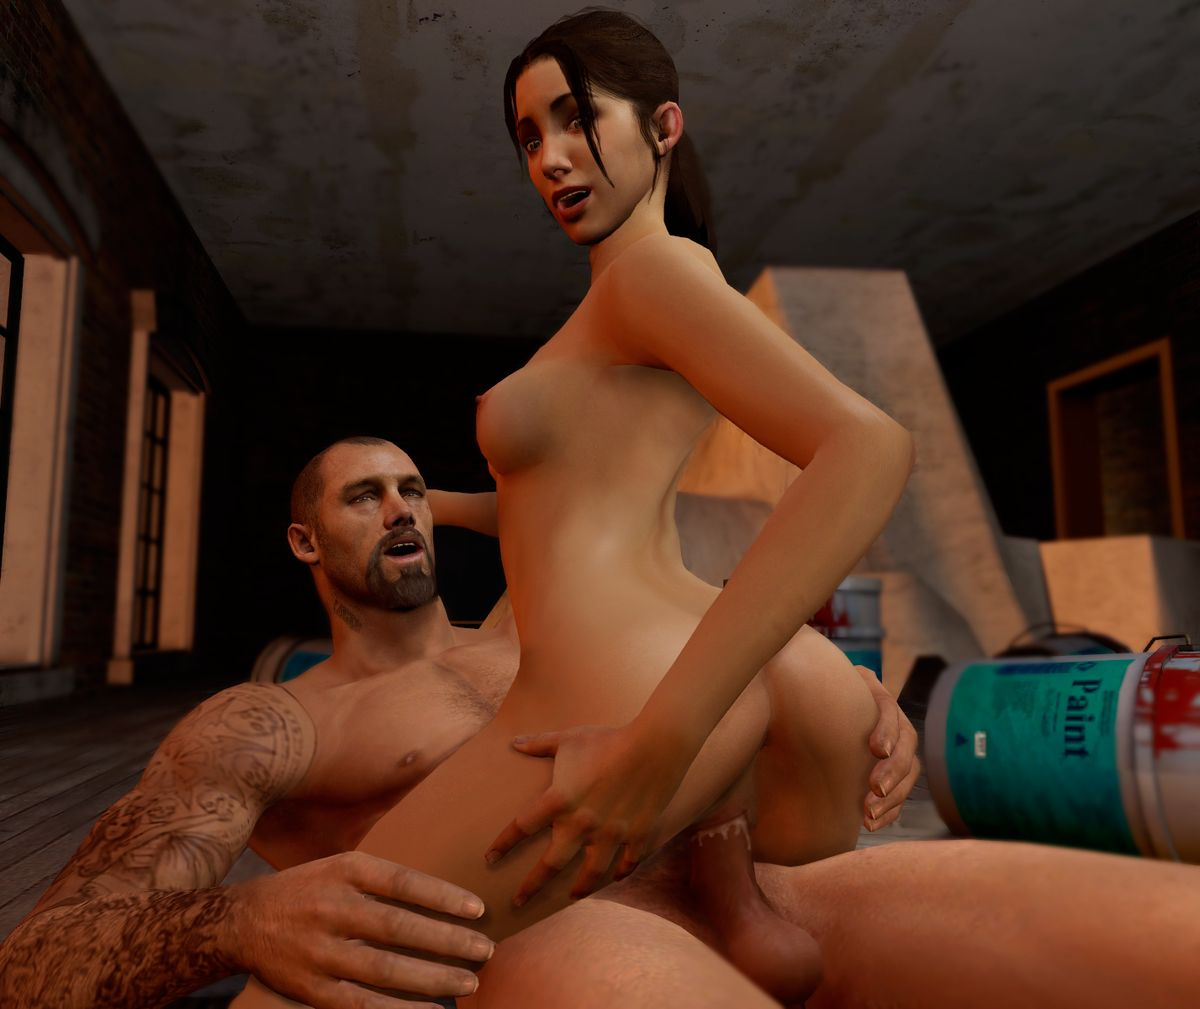 Left4dead 3d game porn porncraft photo